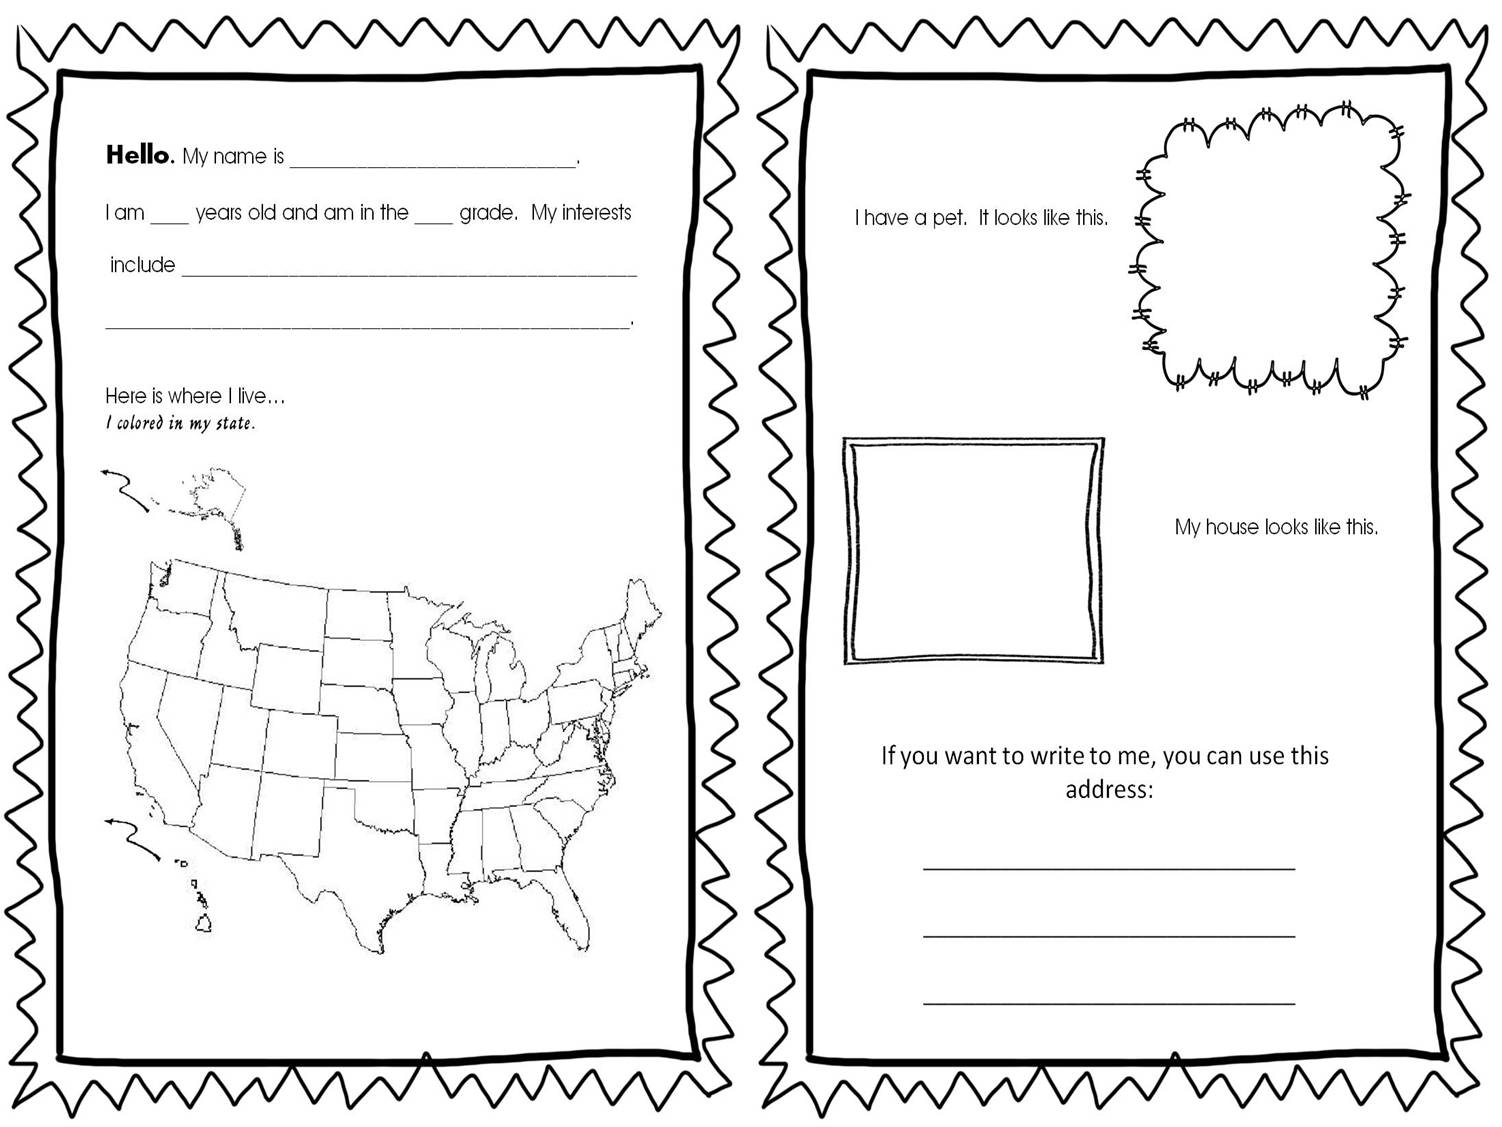 All About Me Coloring Page For Operation Christmas Child